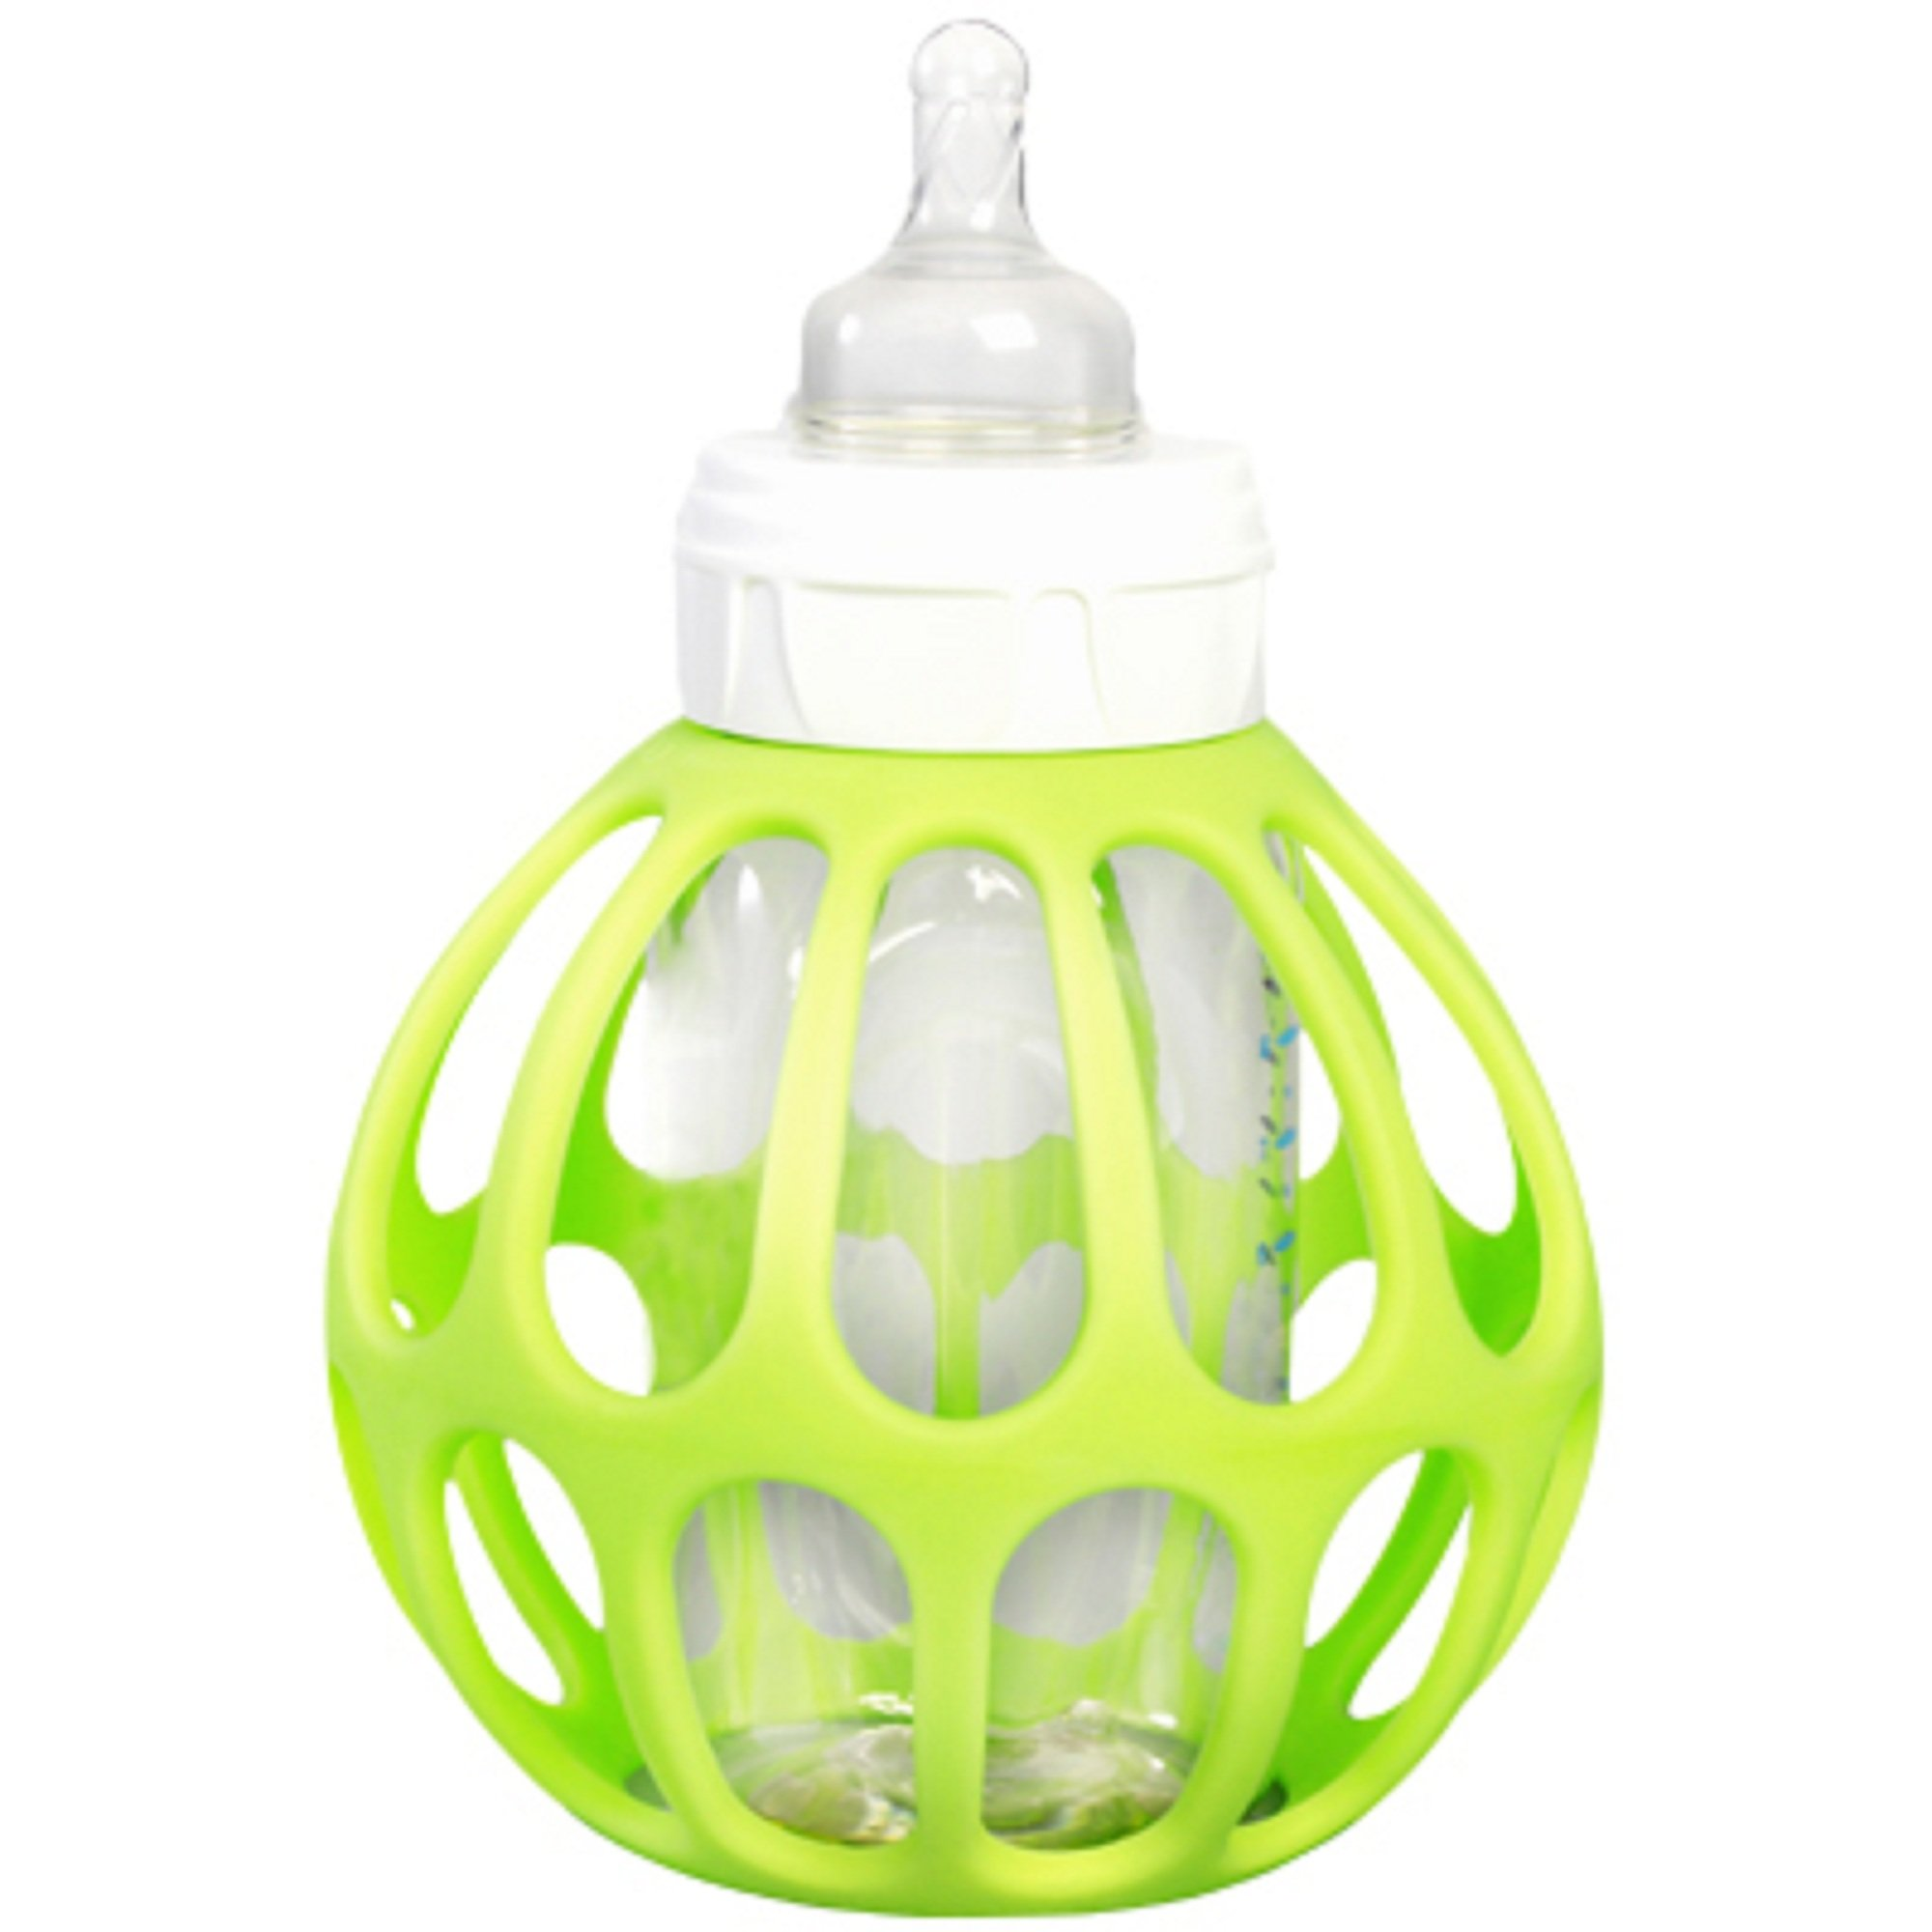 Ba Baby Bottle Holder, Green